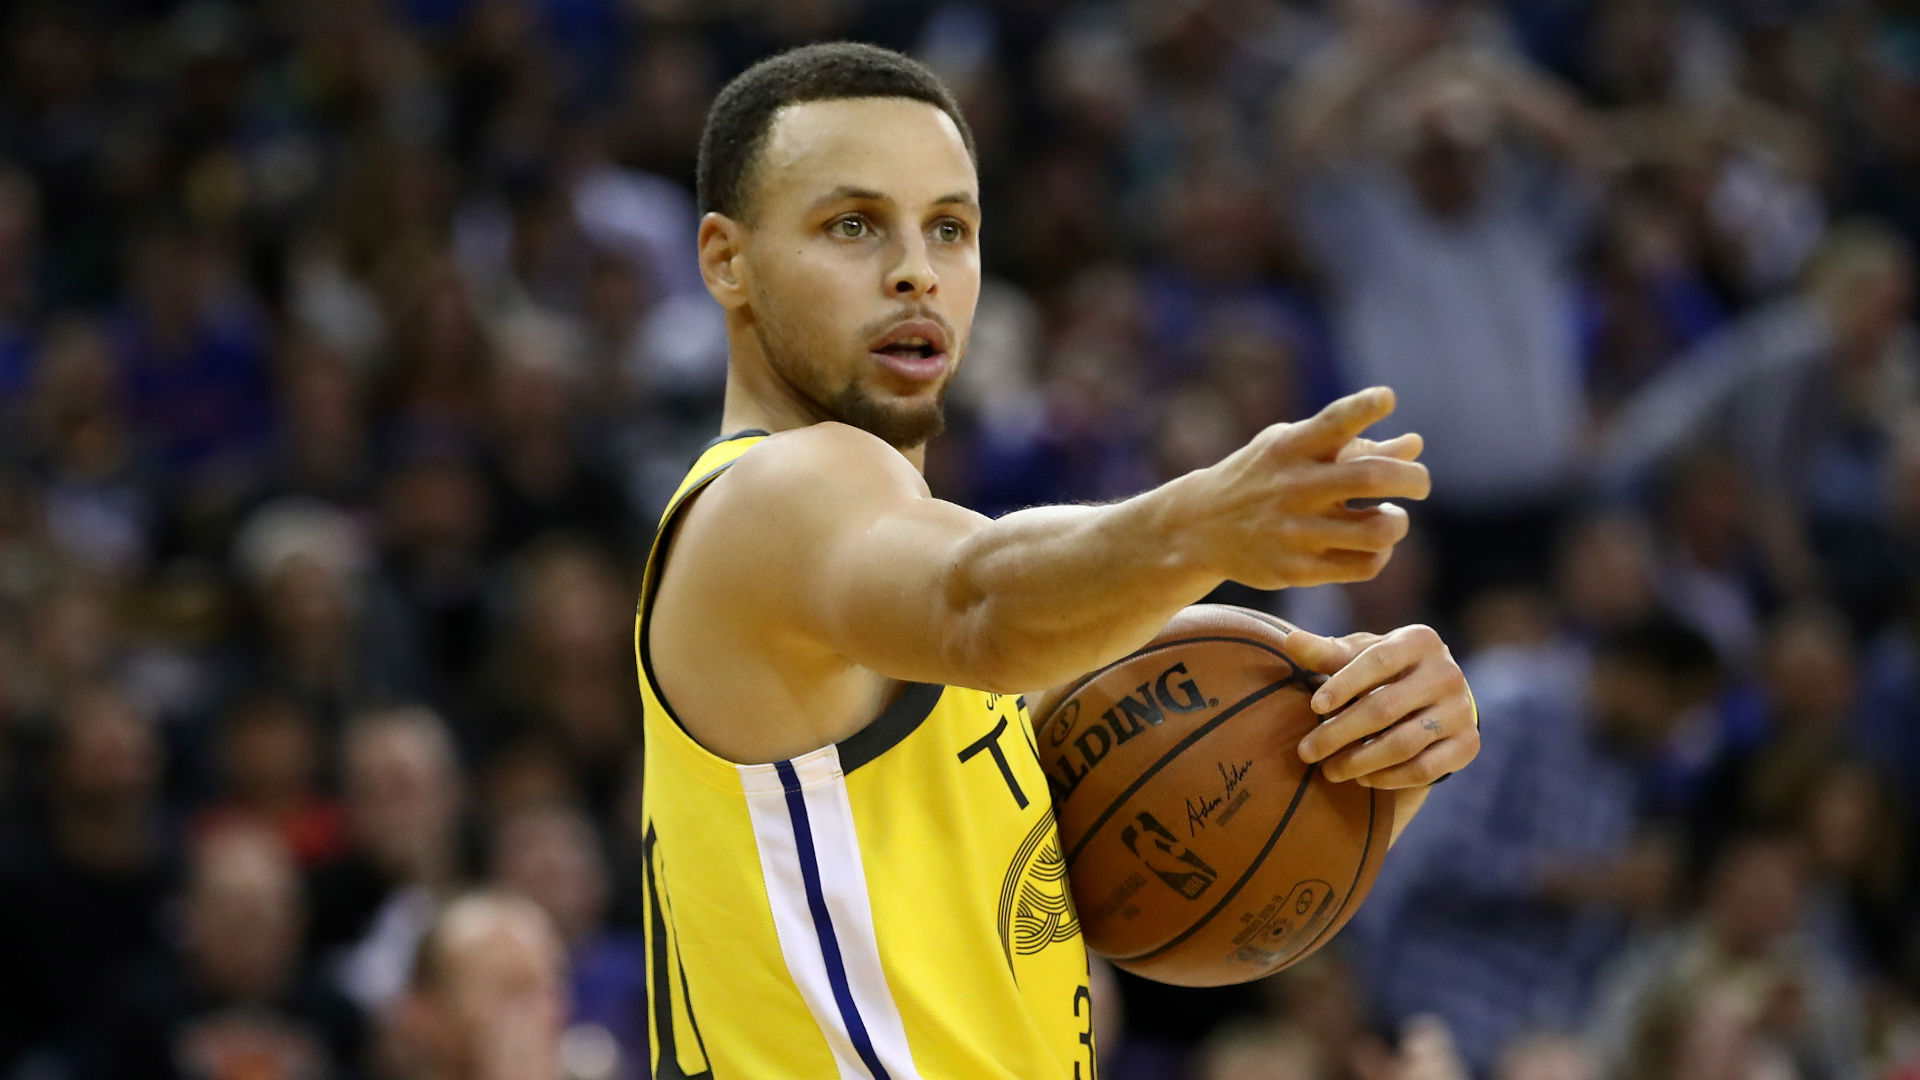 Curry wants game ball signed by Miller and Allen after going third in three-pointers made